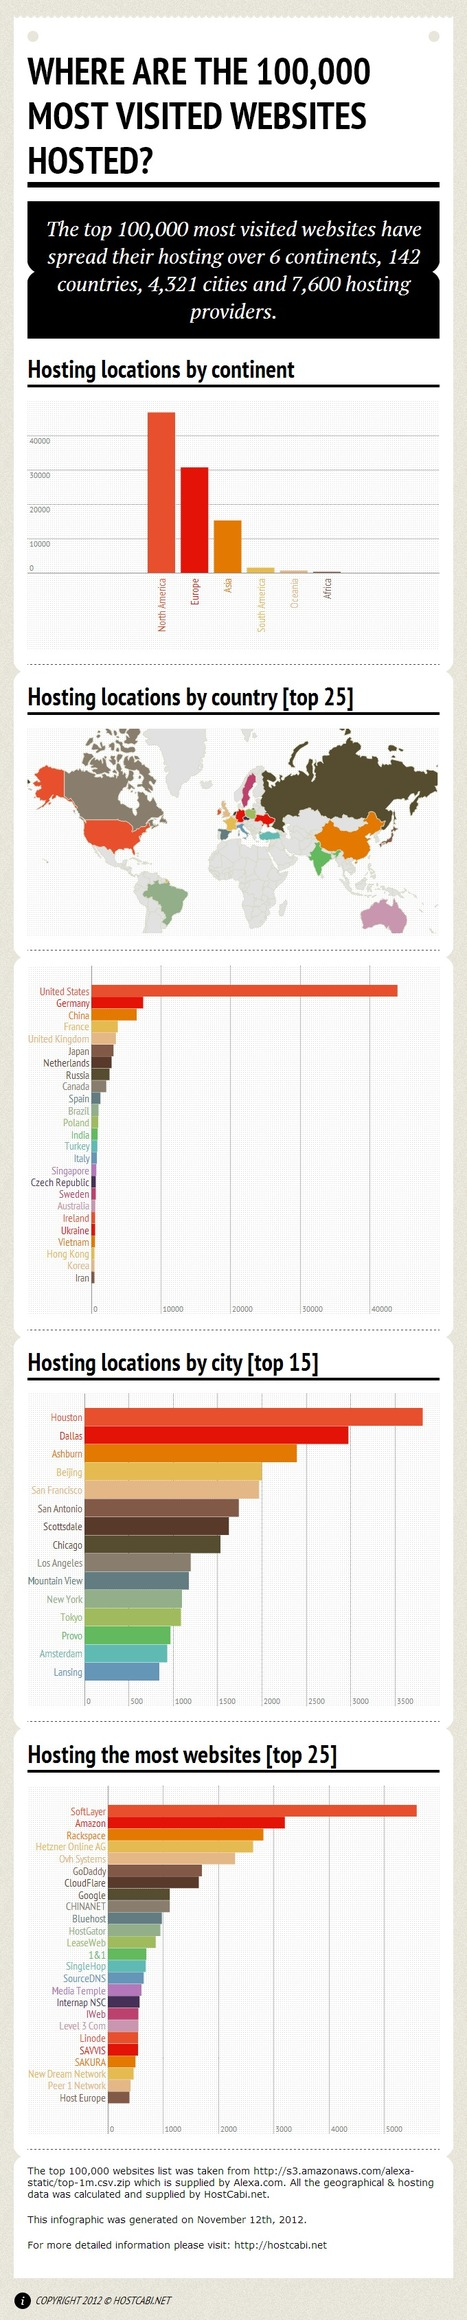 Amsterdam the best 'hostingcity' of Europe – infographic /@BerriePelser | WordPress Google SEO and Social Media | Scoop.it